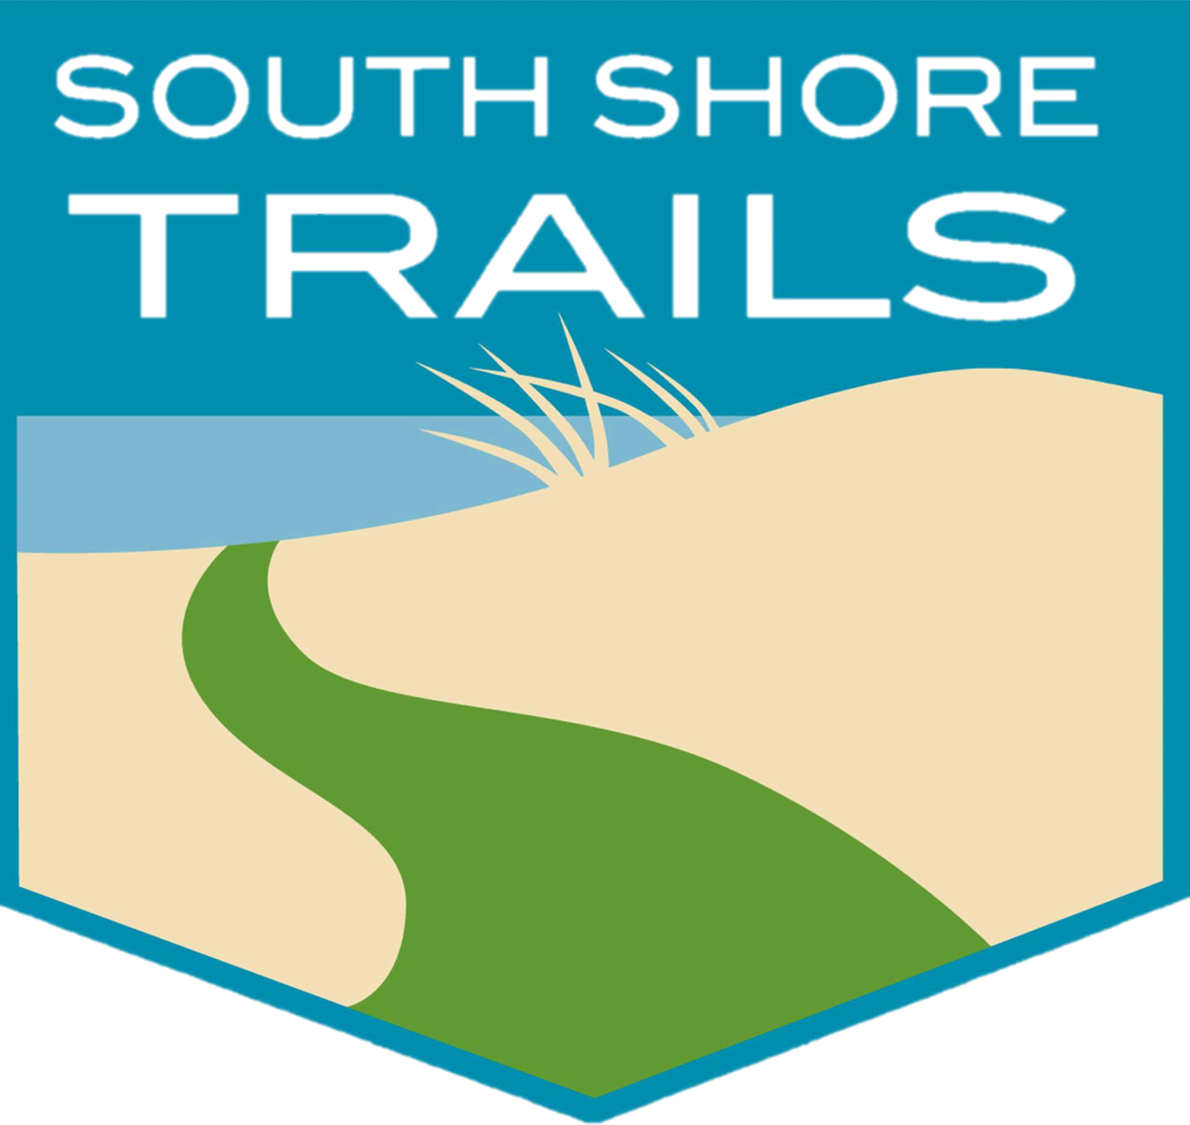 South Shore Trails